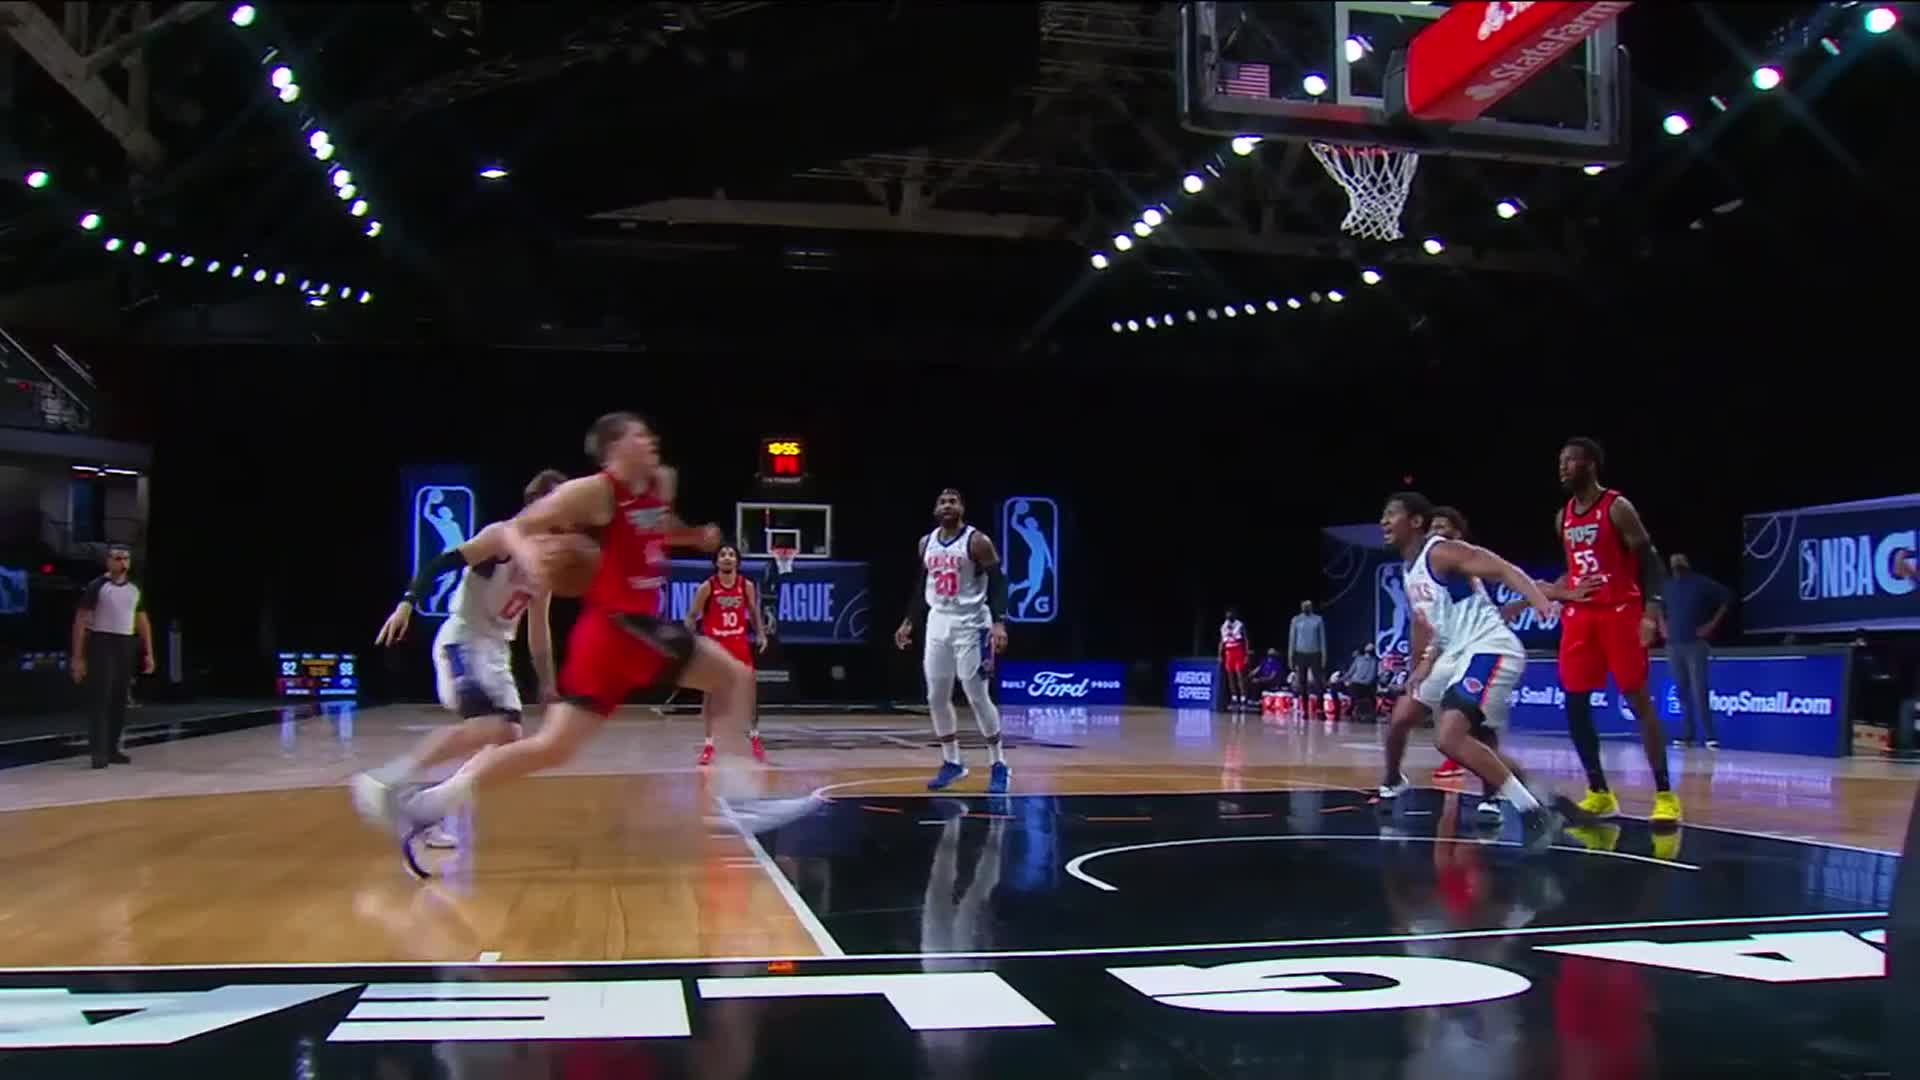 Game Highlights: Raptors 905 vs Westchester Knicks - February 27, 2021